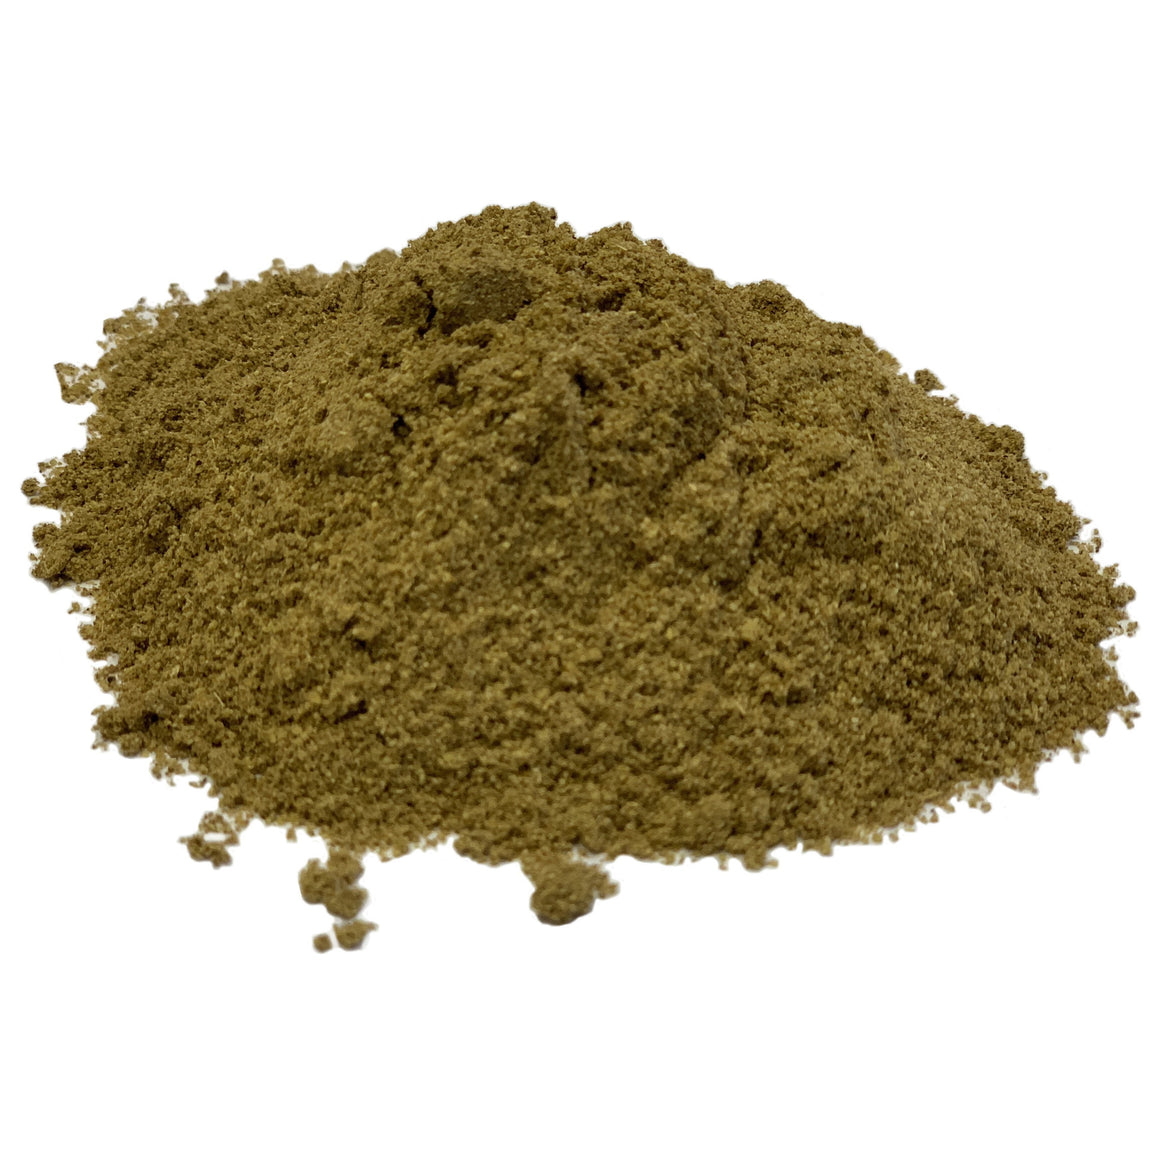 Anise Seed Powder